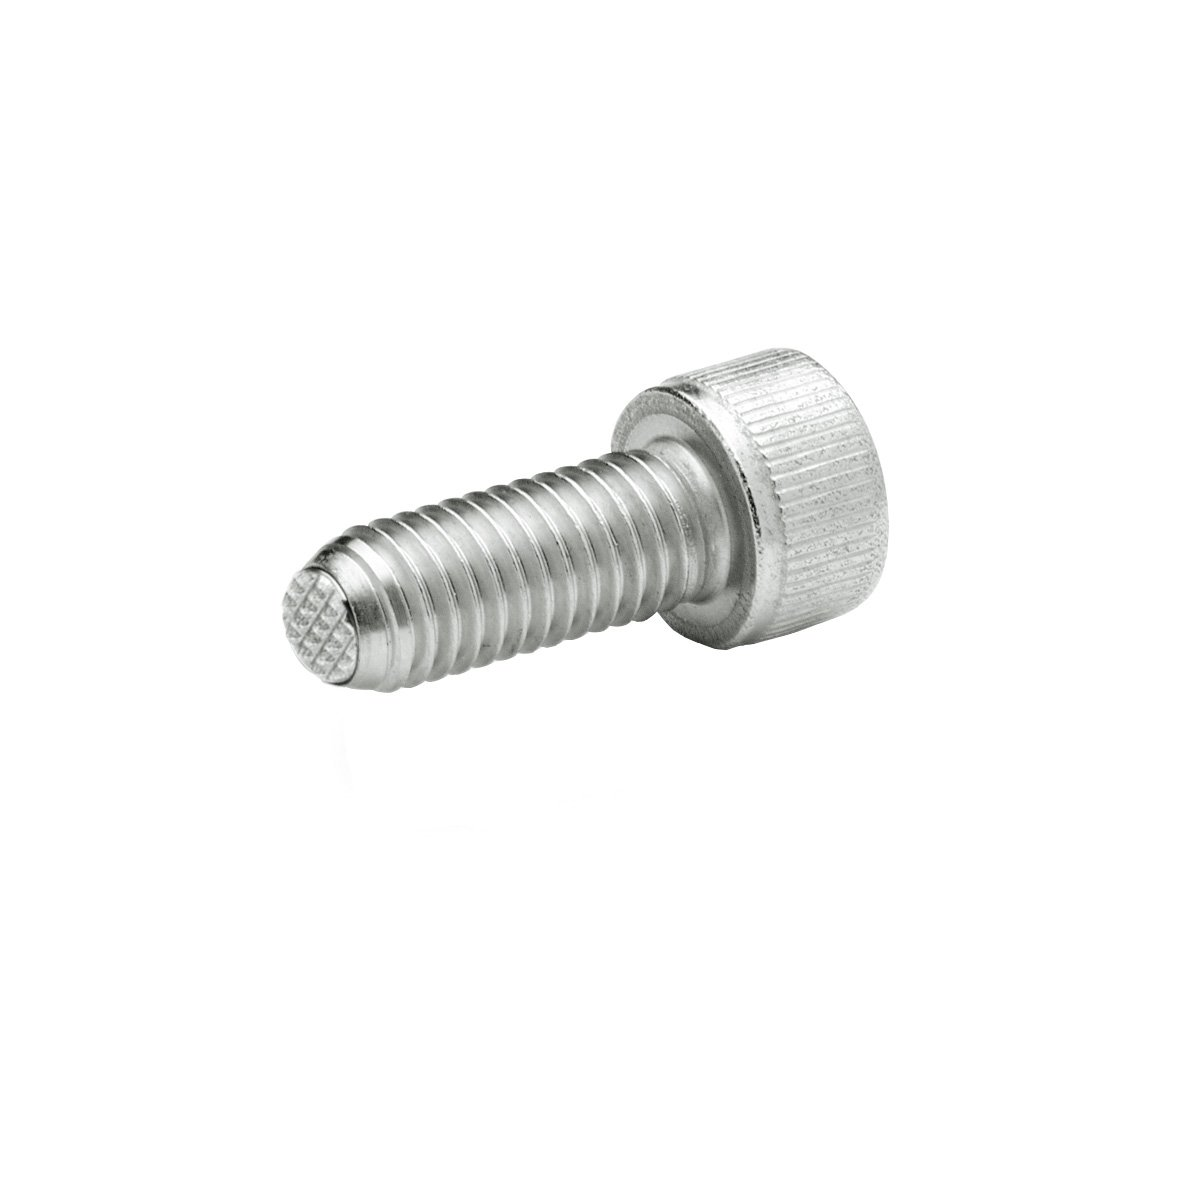 Safety Twist Feature J.W Winco 10N40P48//VRN GN606-NI Socket Head Cap Screw with Serrated Flat Ball M10 x 40 mm Thread Length Stainless Steel Ganter